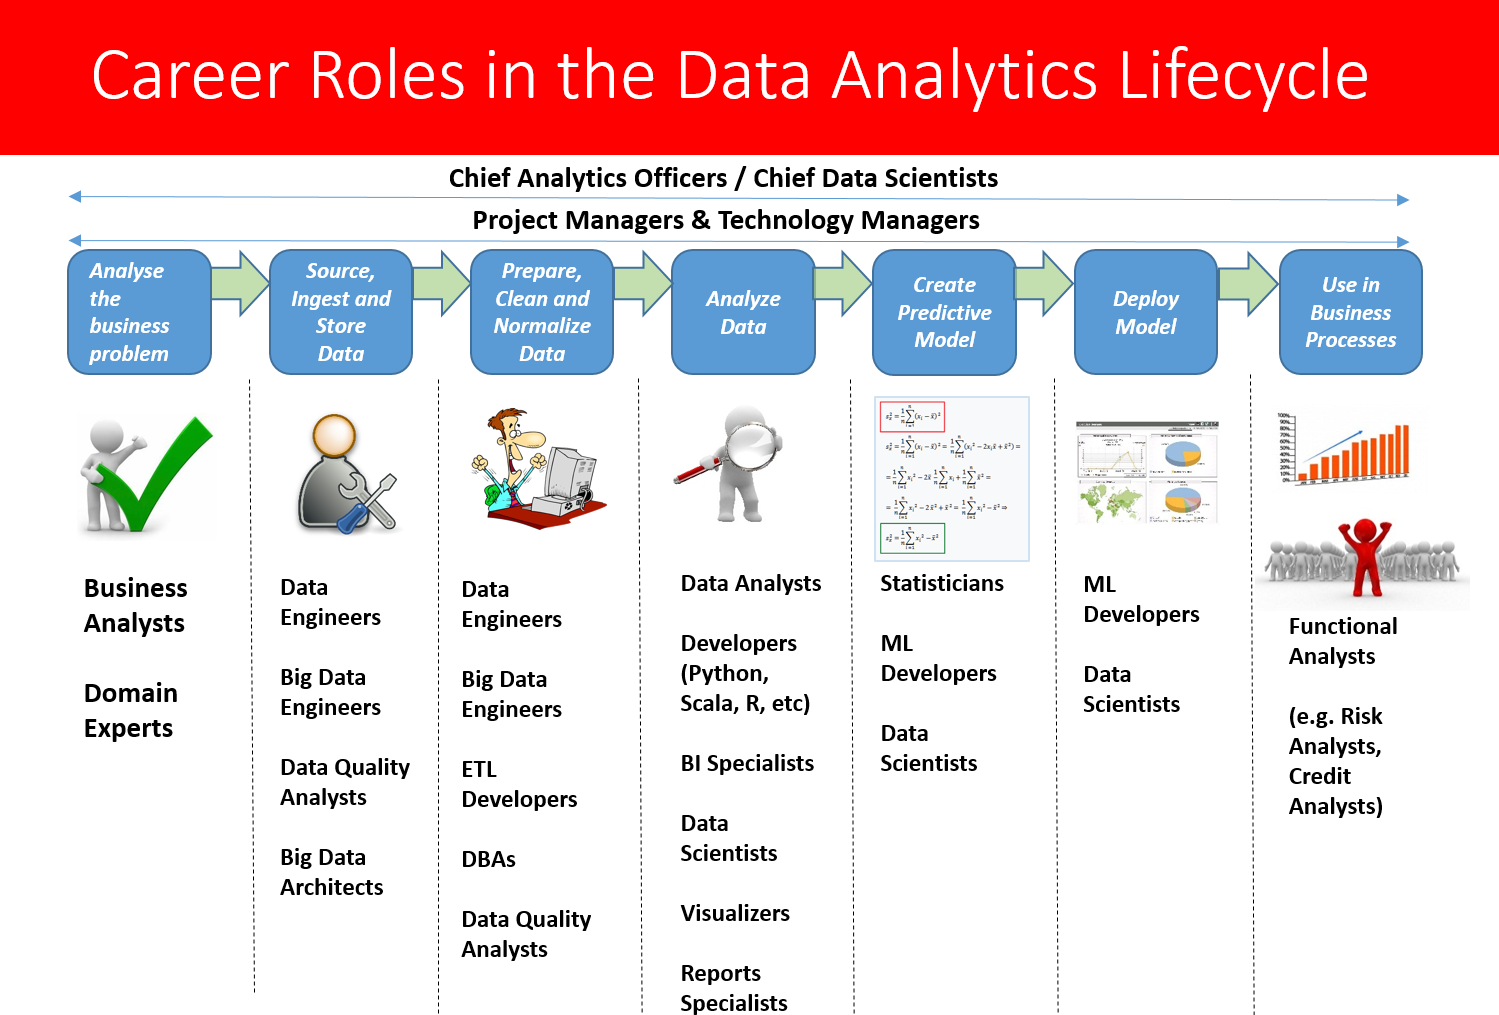 Career Development in Data Analytics - Image 3